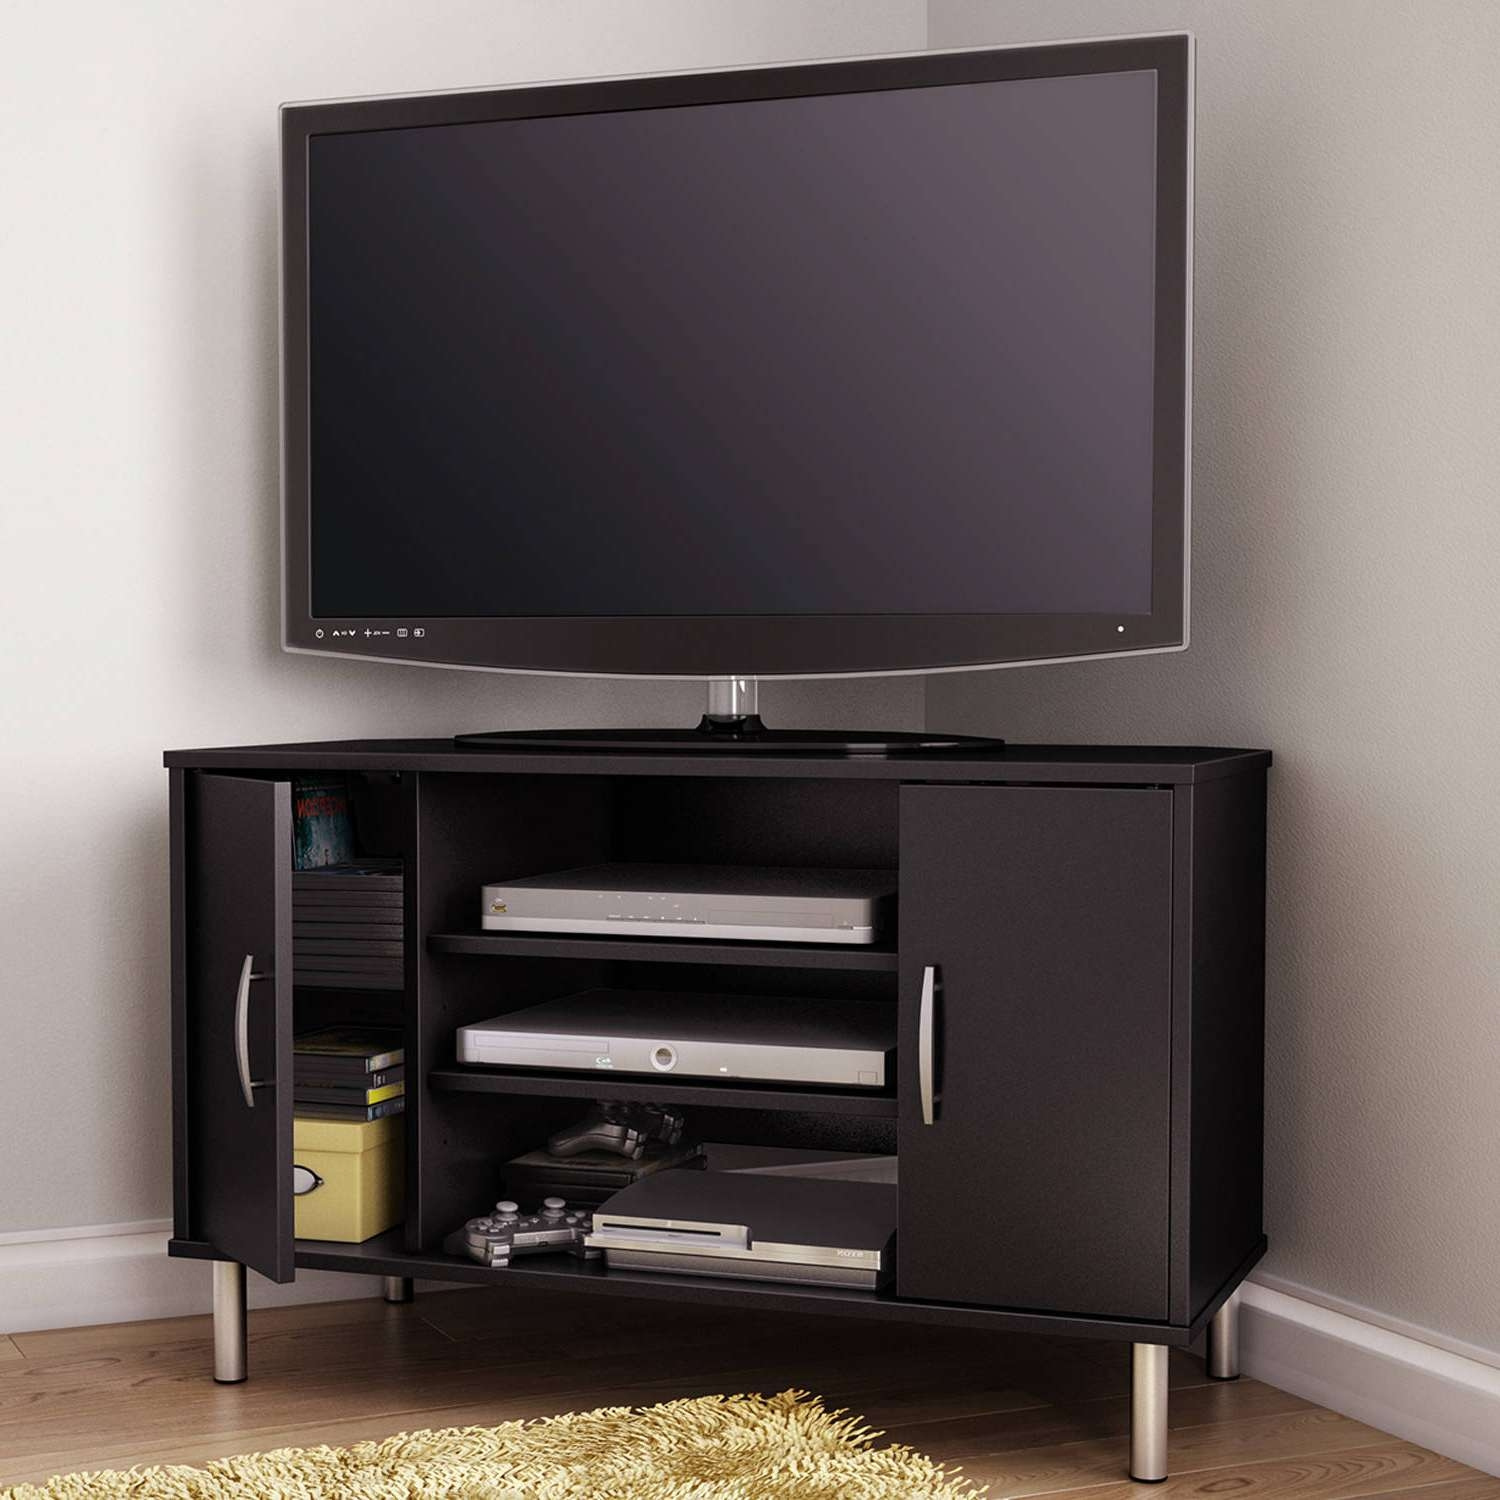 Tv Stand : Stirring Corner Tv Stand For Inch Photo Concept Flat Intended For Tv Stands For Large Tvs (View 2 of 15)